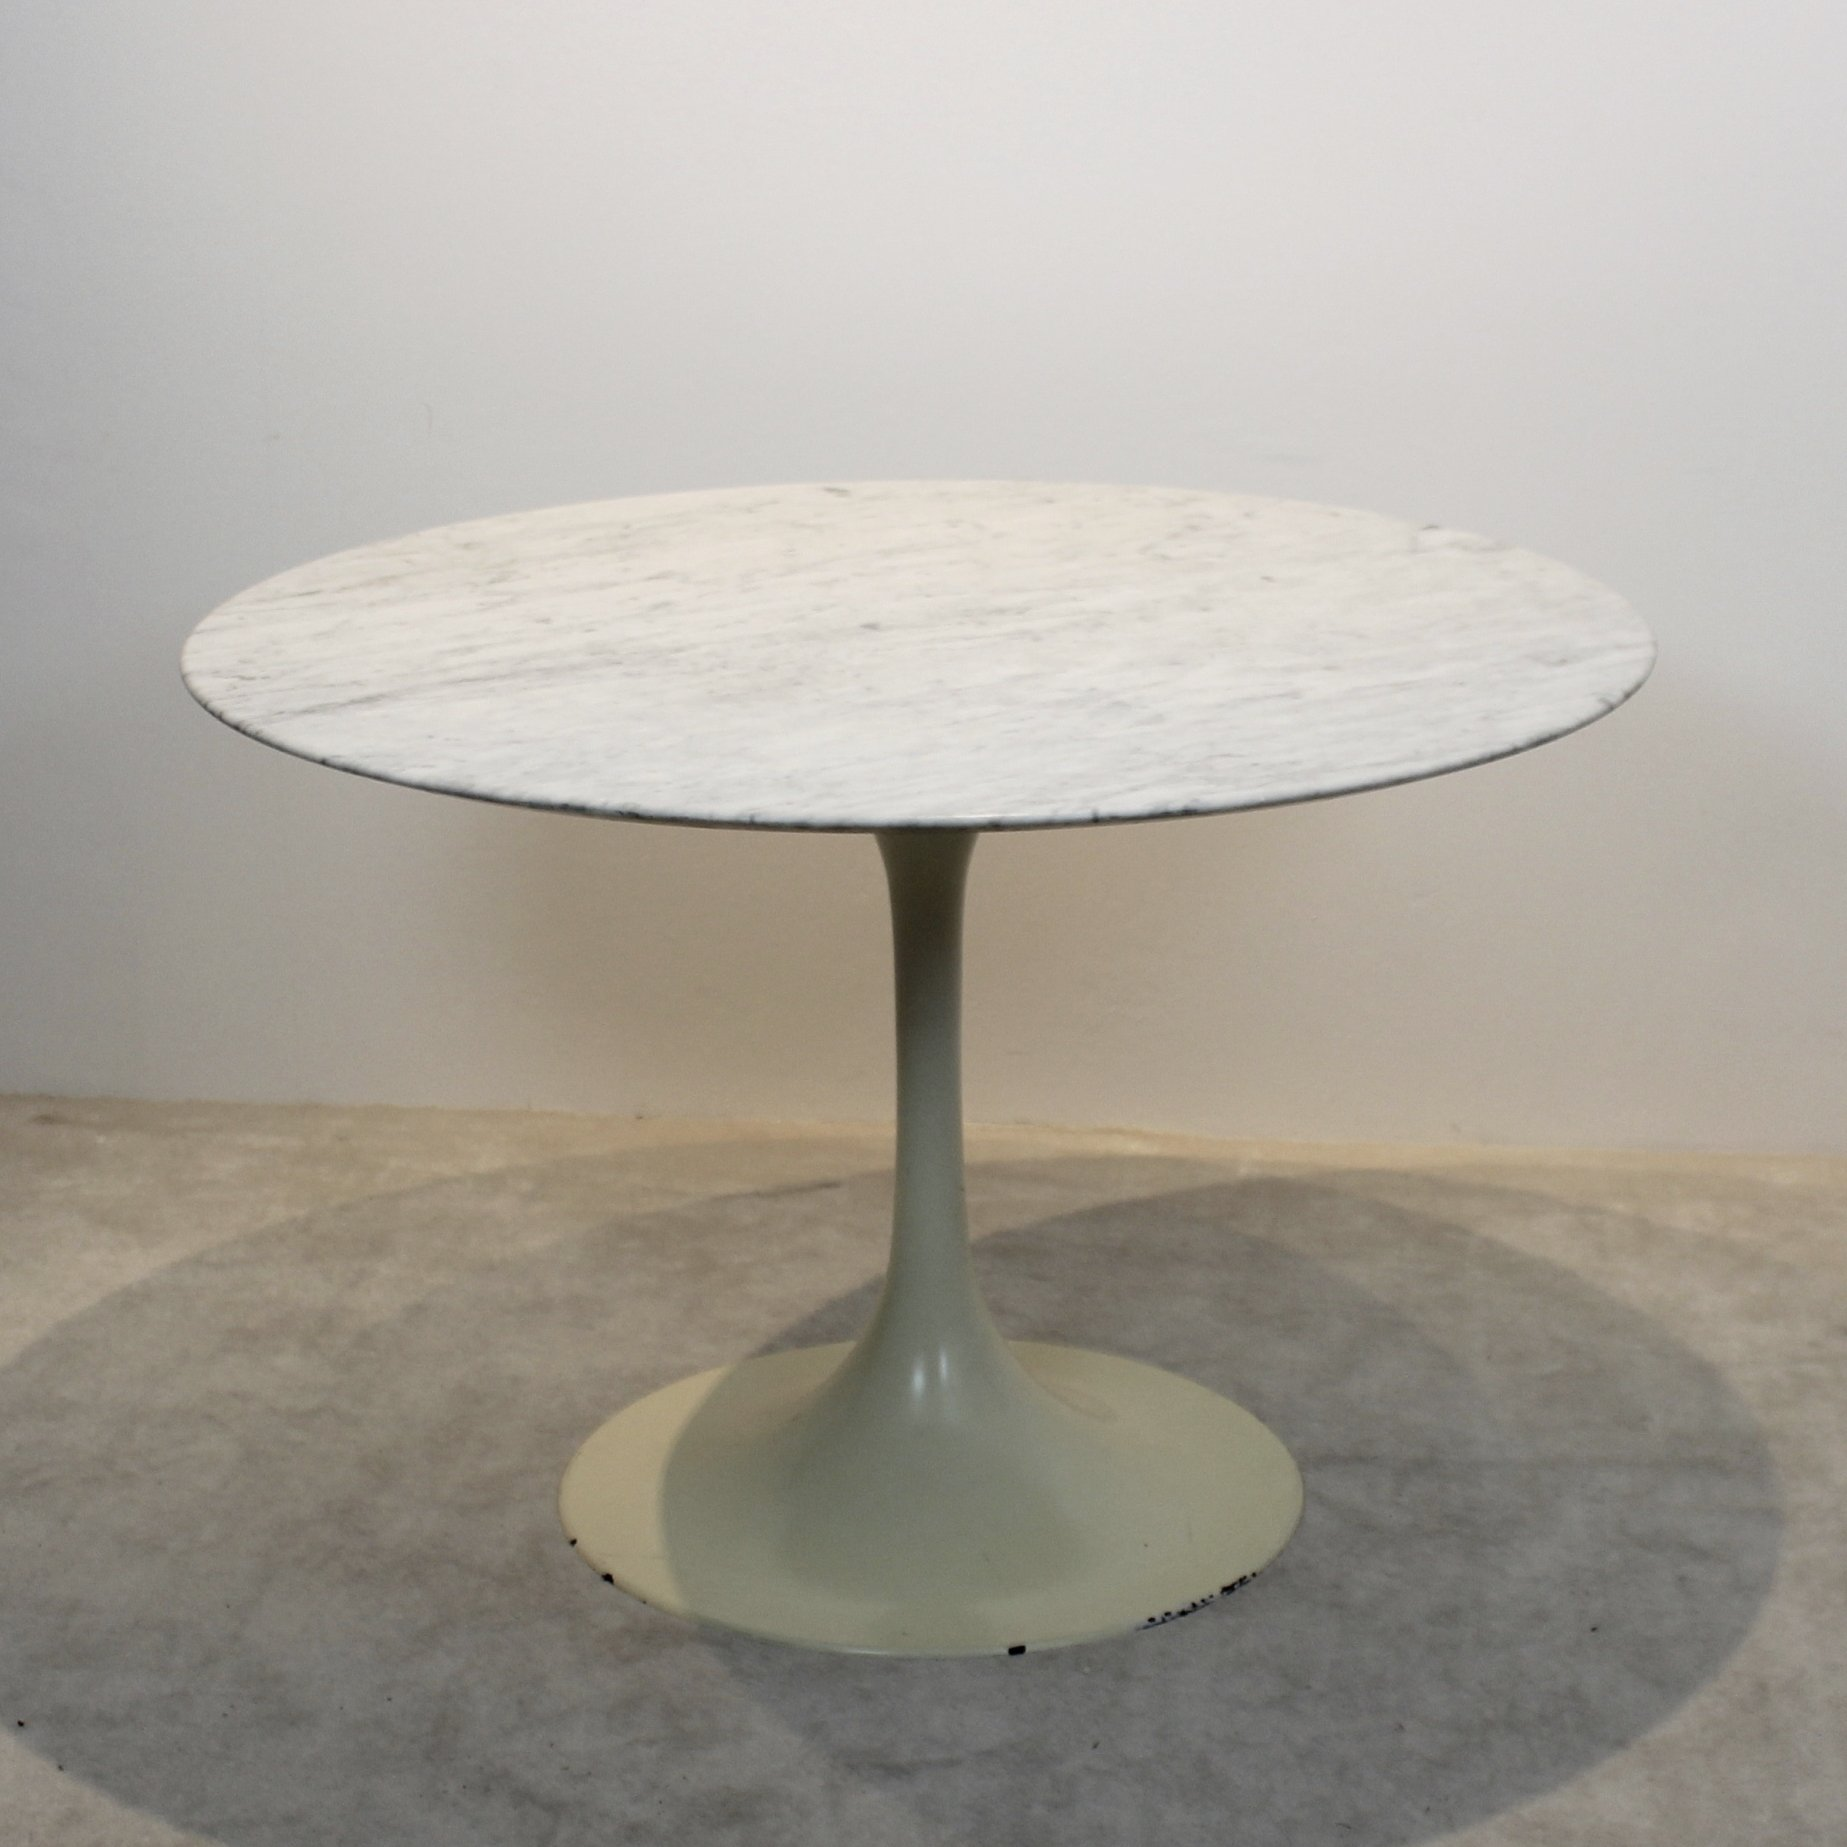 Tulip Dining Table With Marble Top By Eero Saarinen For